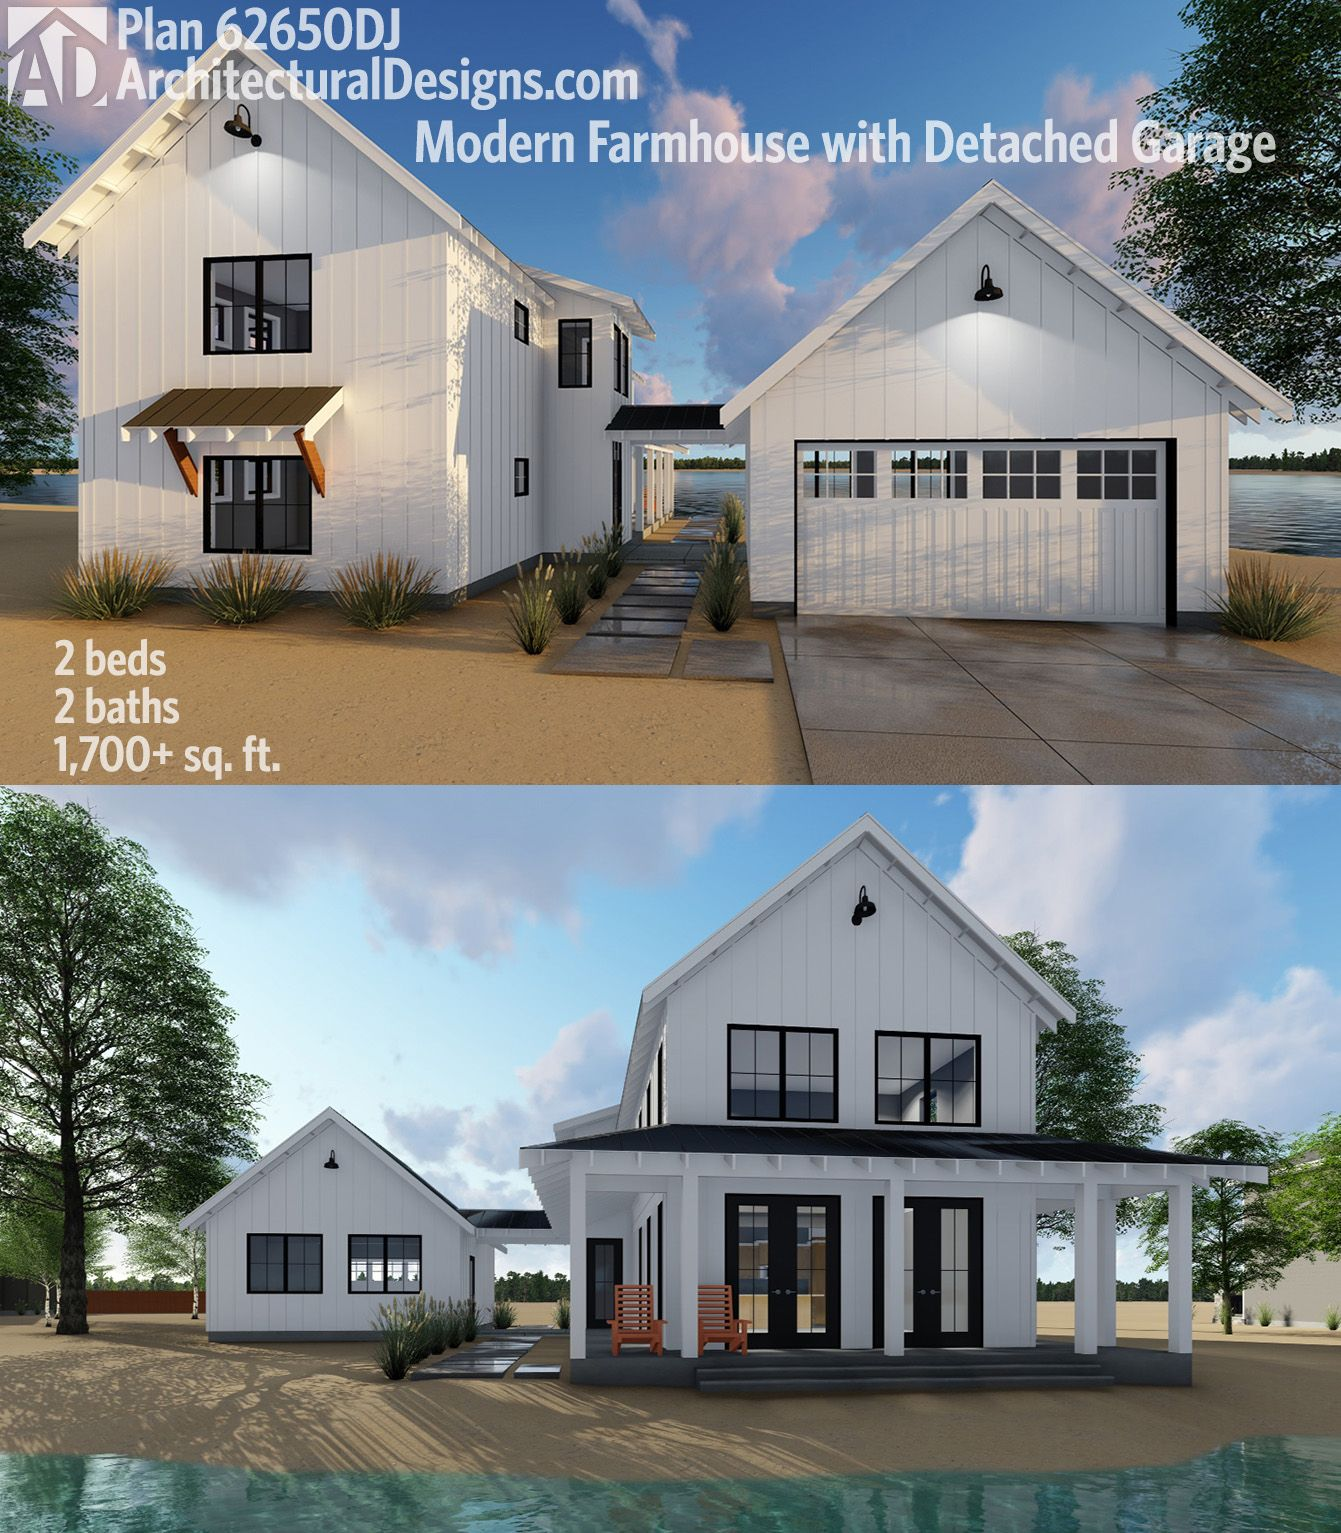 Modern Farmhouse Plans plan 62650dj: modern farmhouse plan with 2 beds and semi-detached